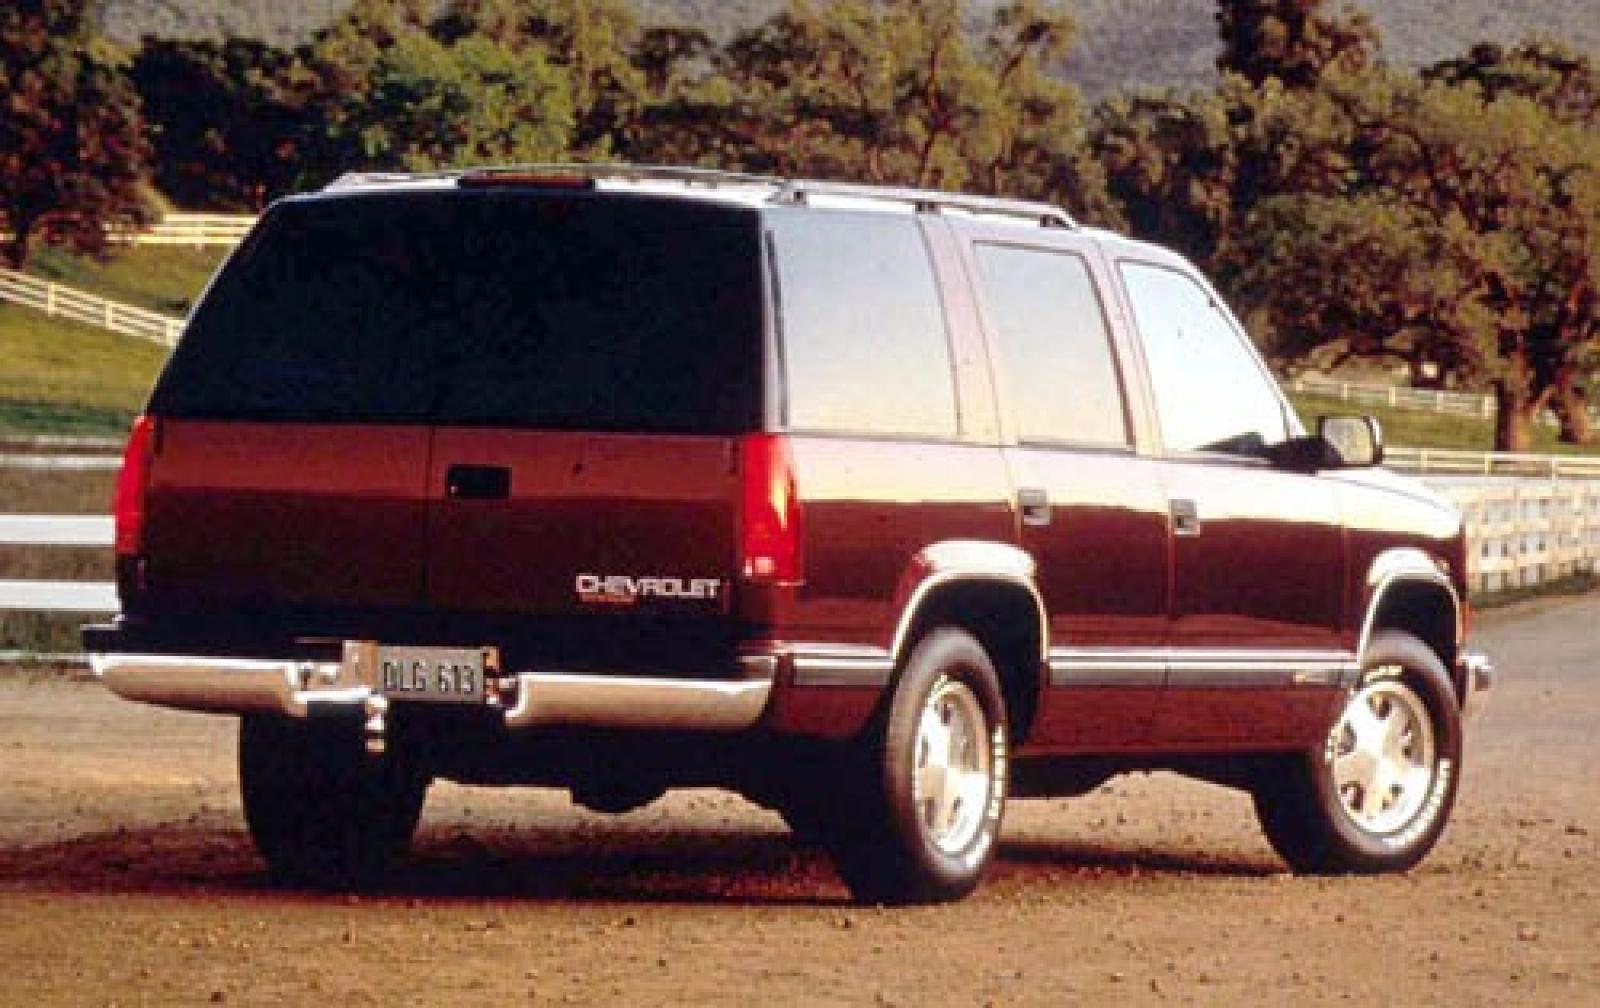 hight resolution of 800 1024 1280 1600 origin 1999 chevrolet tahoe